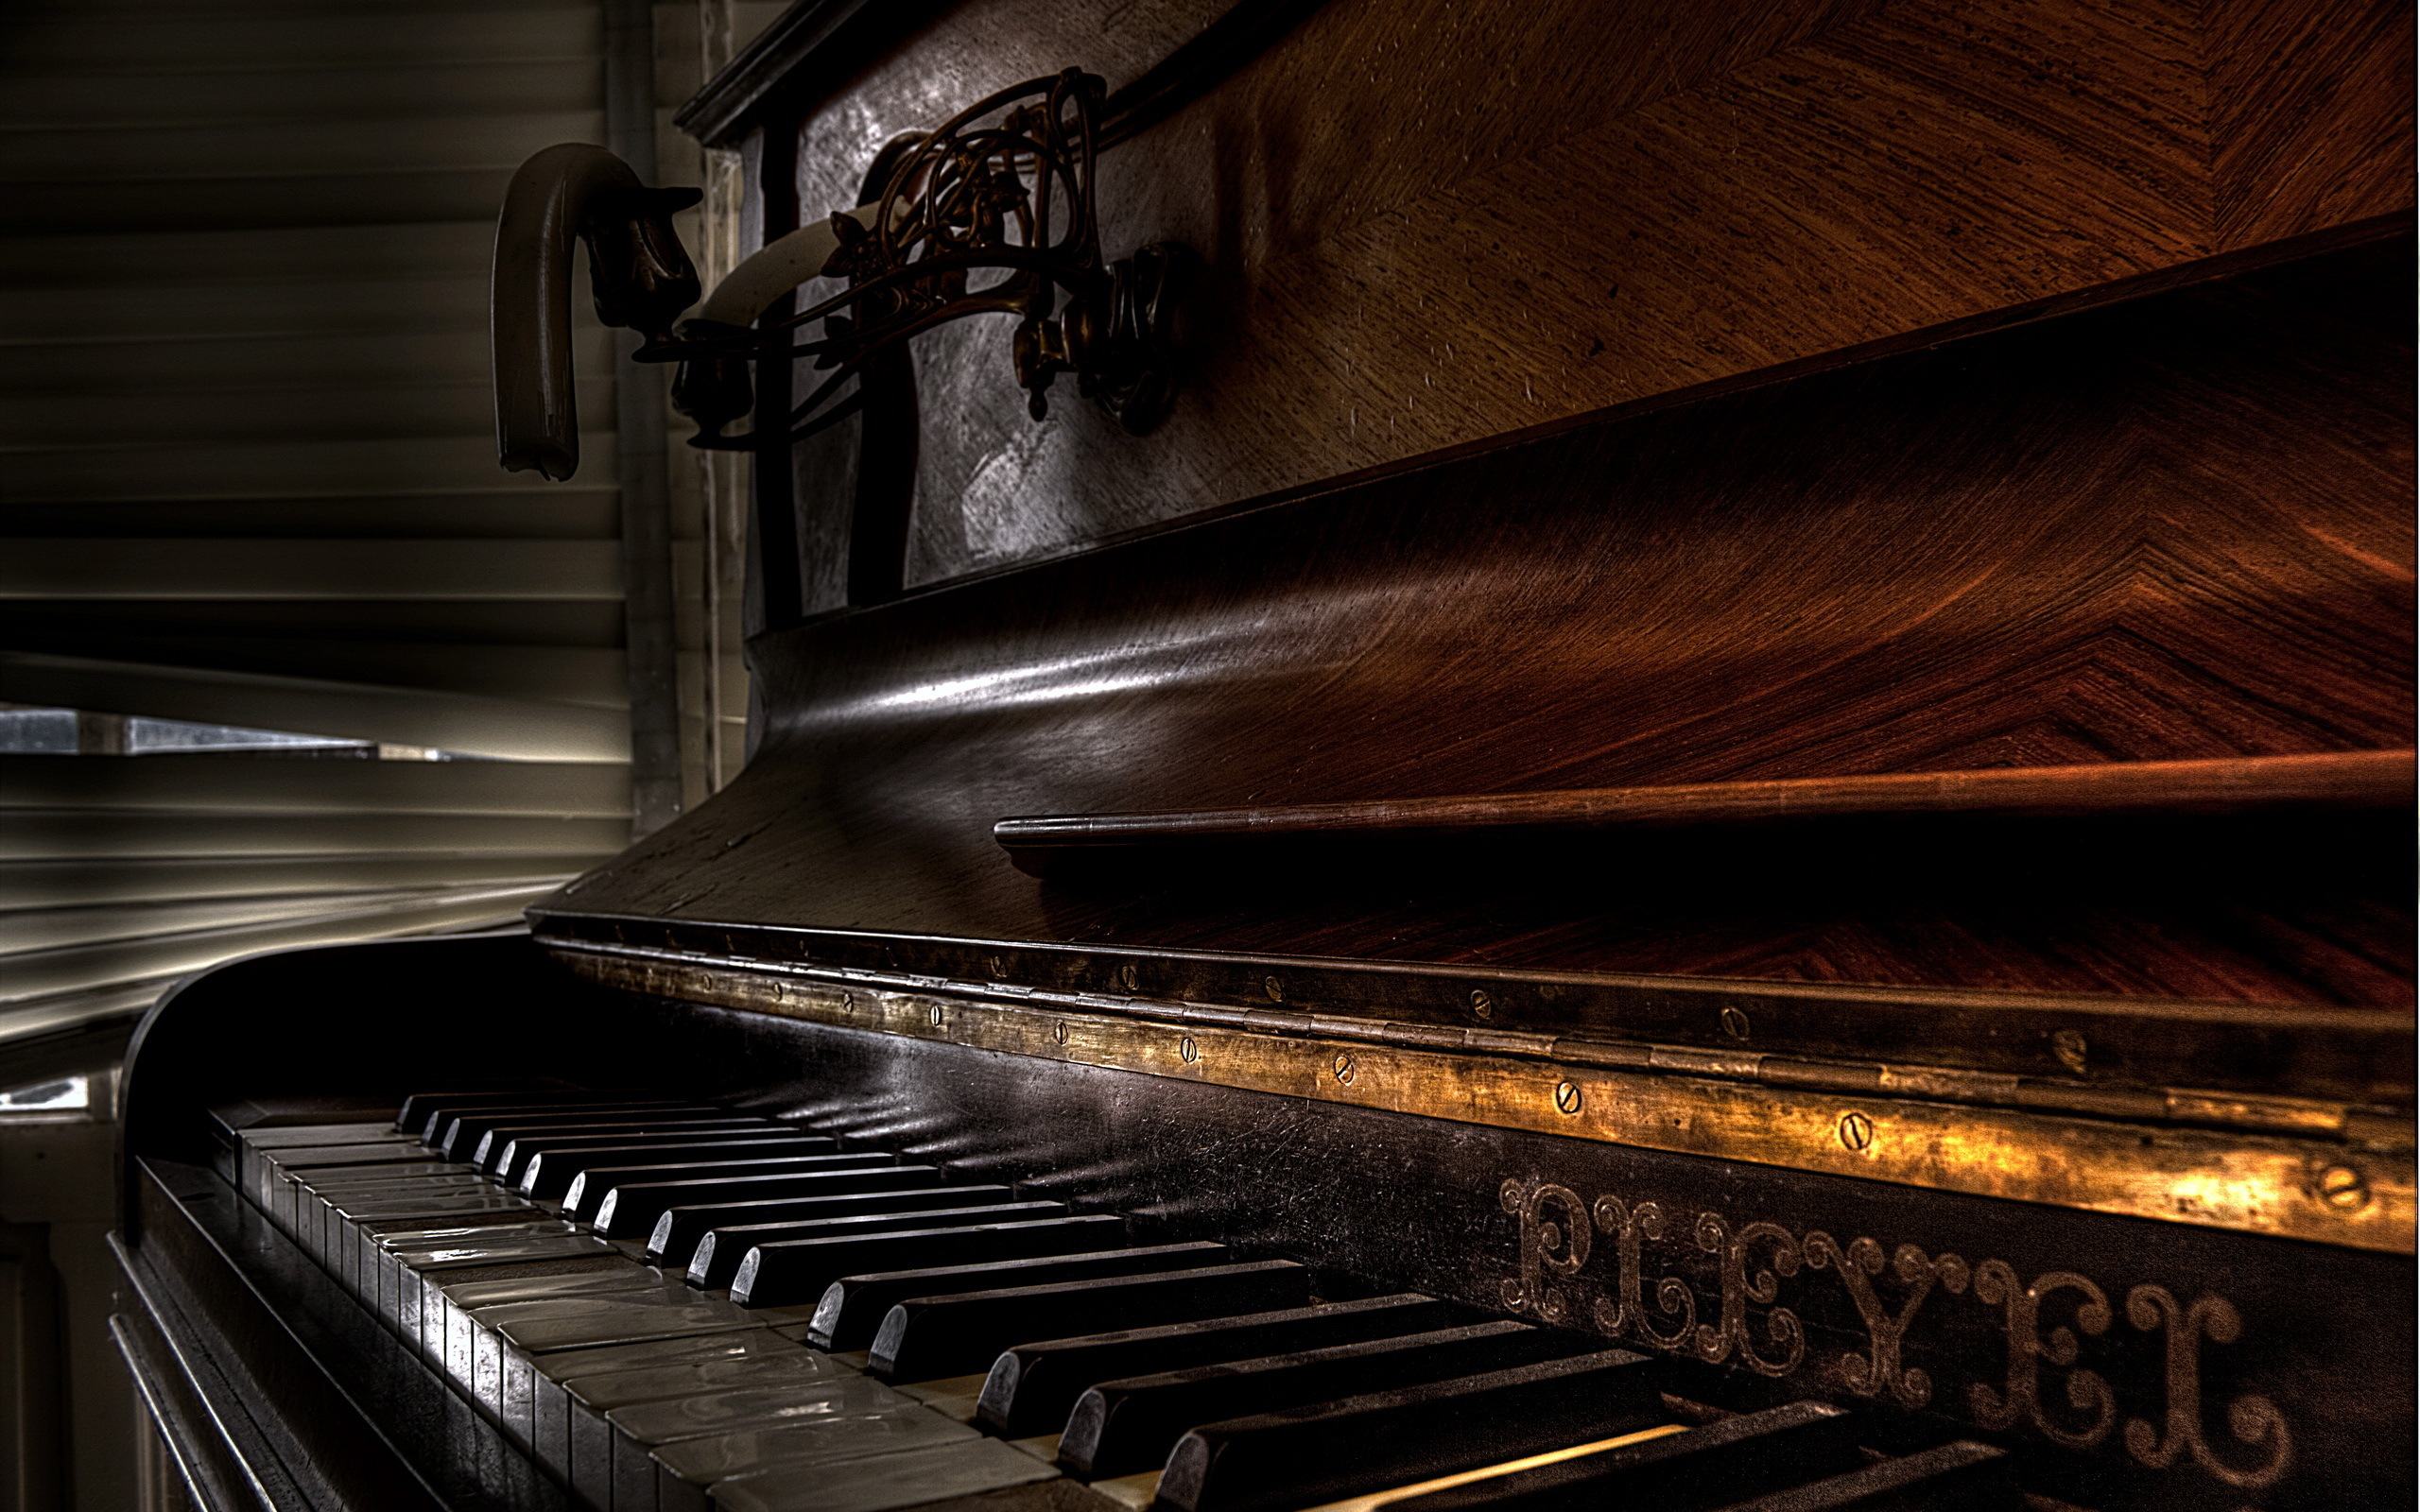 Piano hd wallpaper background image 2560x1600 id - Cool piano backgrounds ...